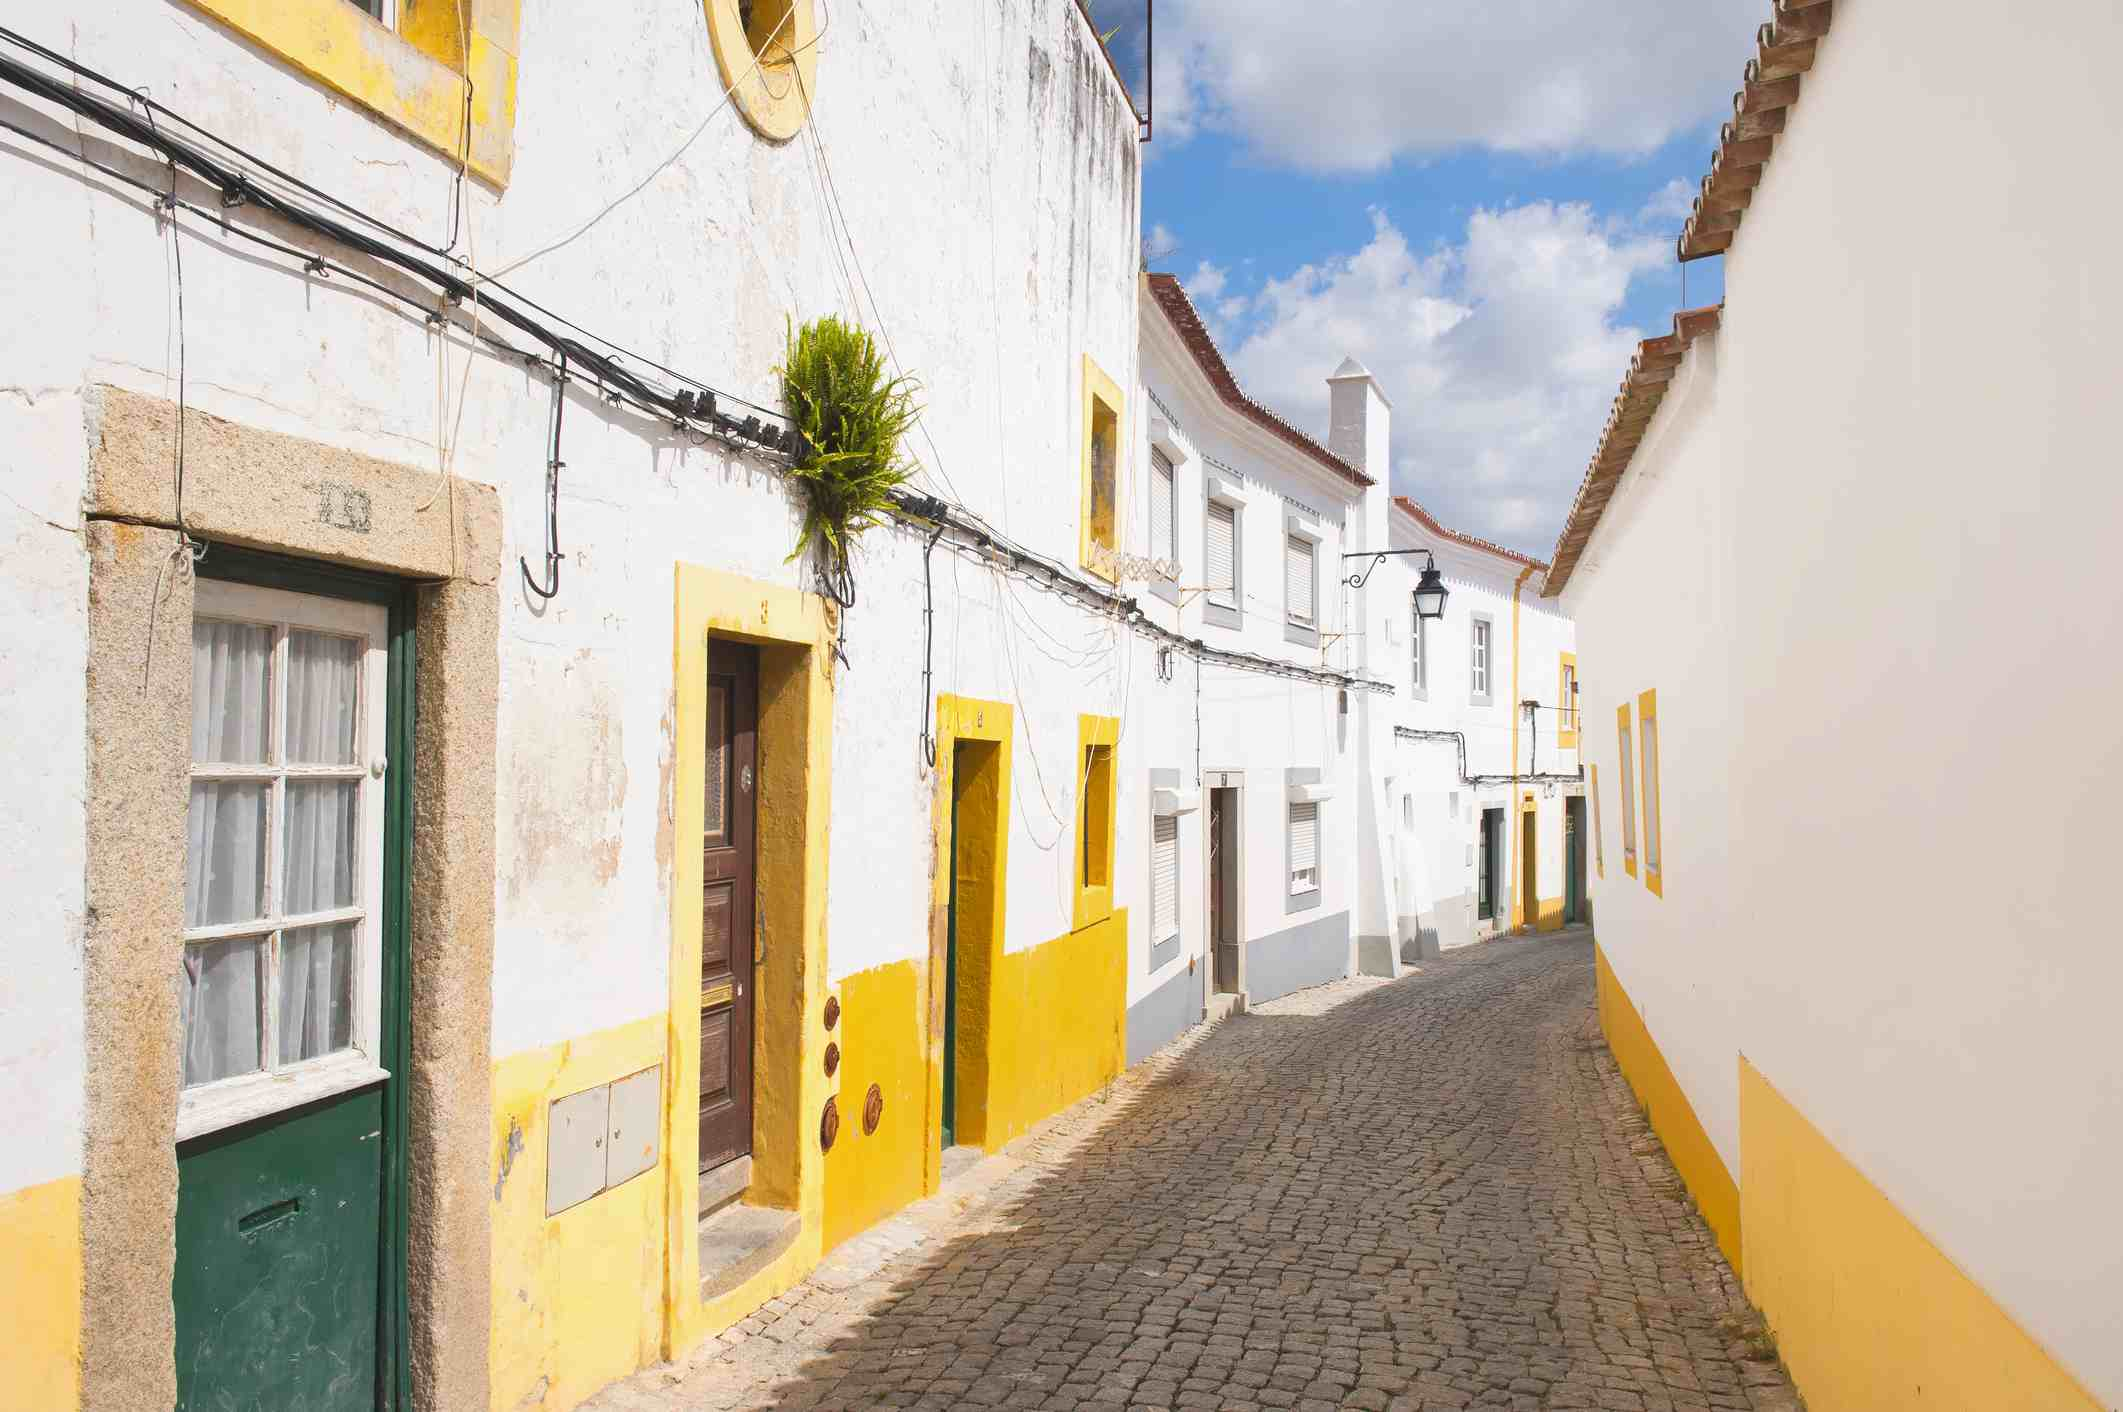 Typical street in the historic city of Evora, Unesco World Heritage Site, Alentejo, Portugal, Europe